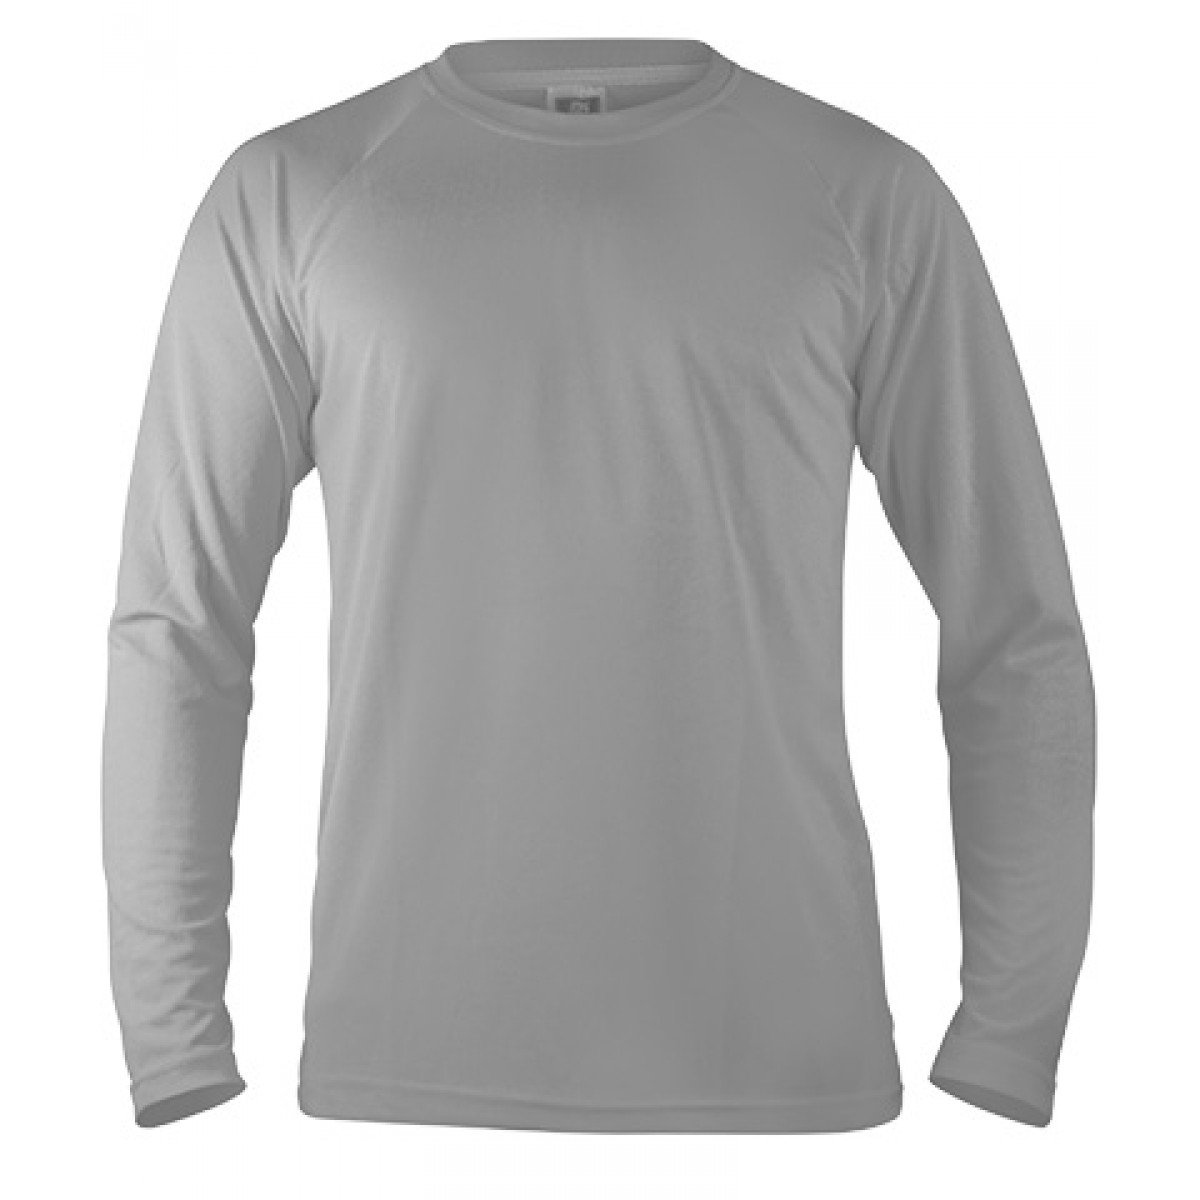 Long Sleeve Performance -Gray -YM